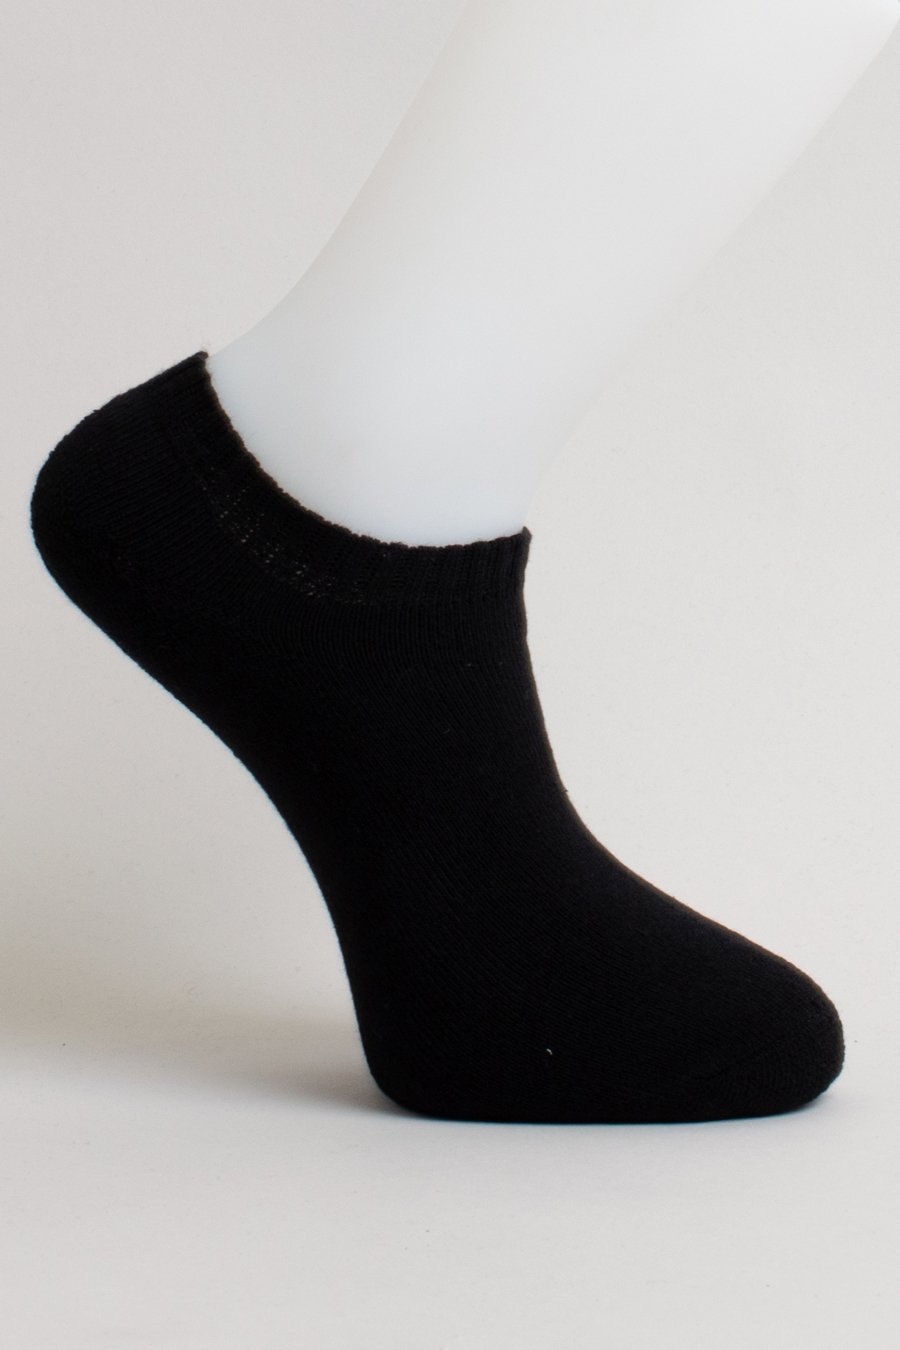 Men's Ankle Sock, Bamboo - Blue Sky Clothing Co